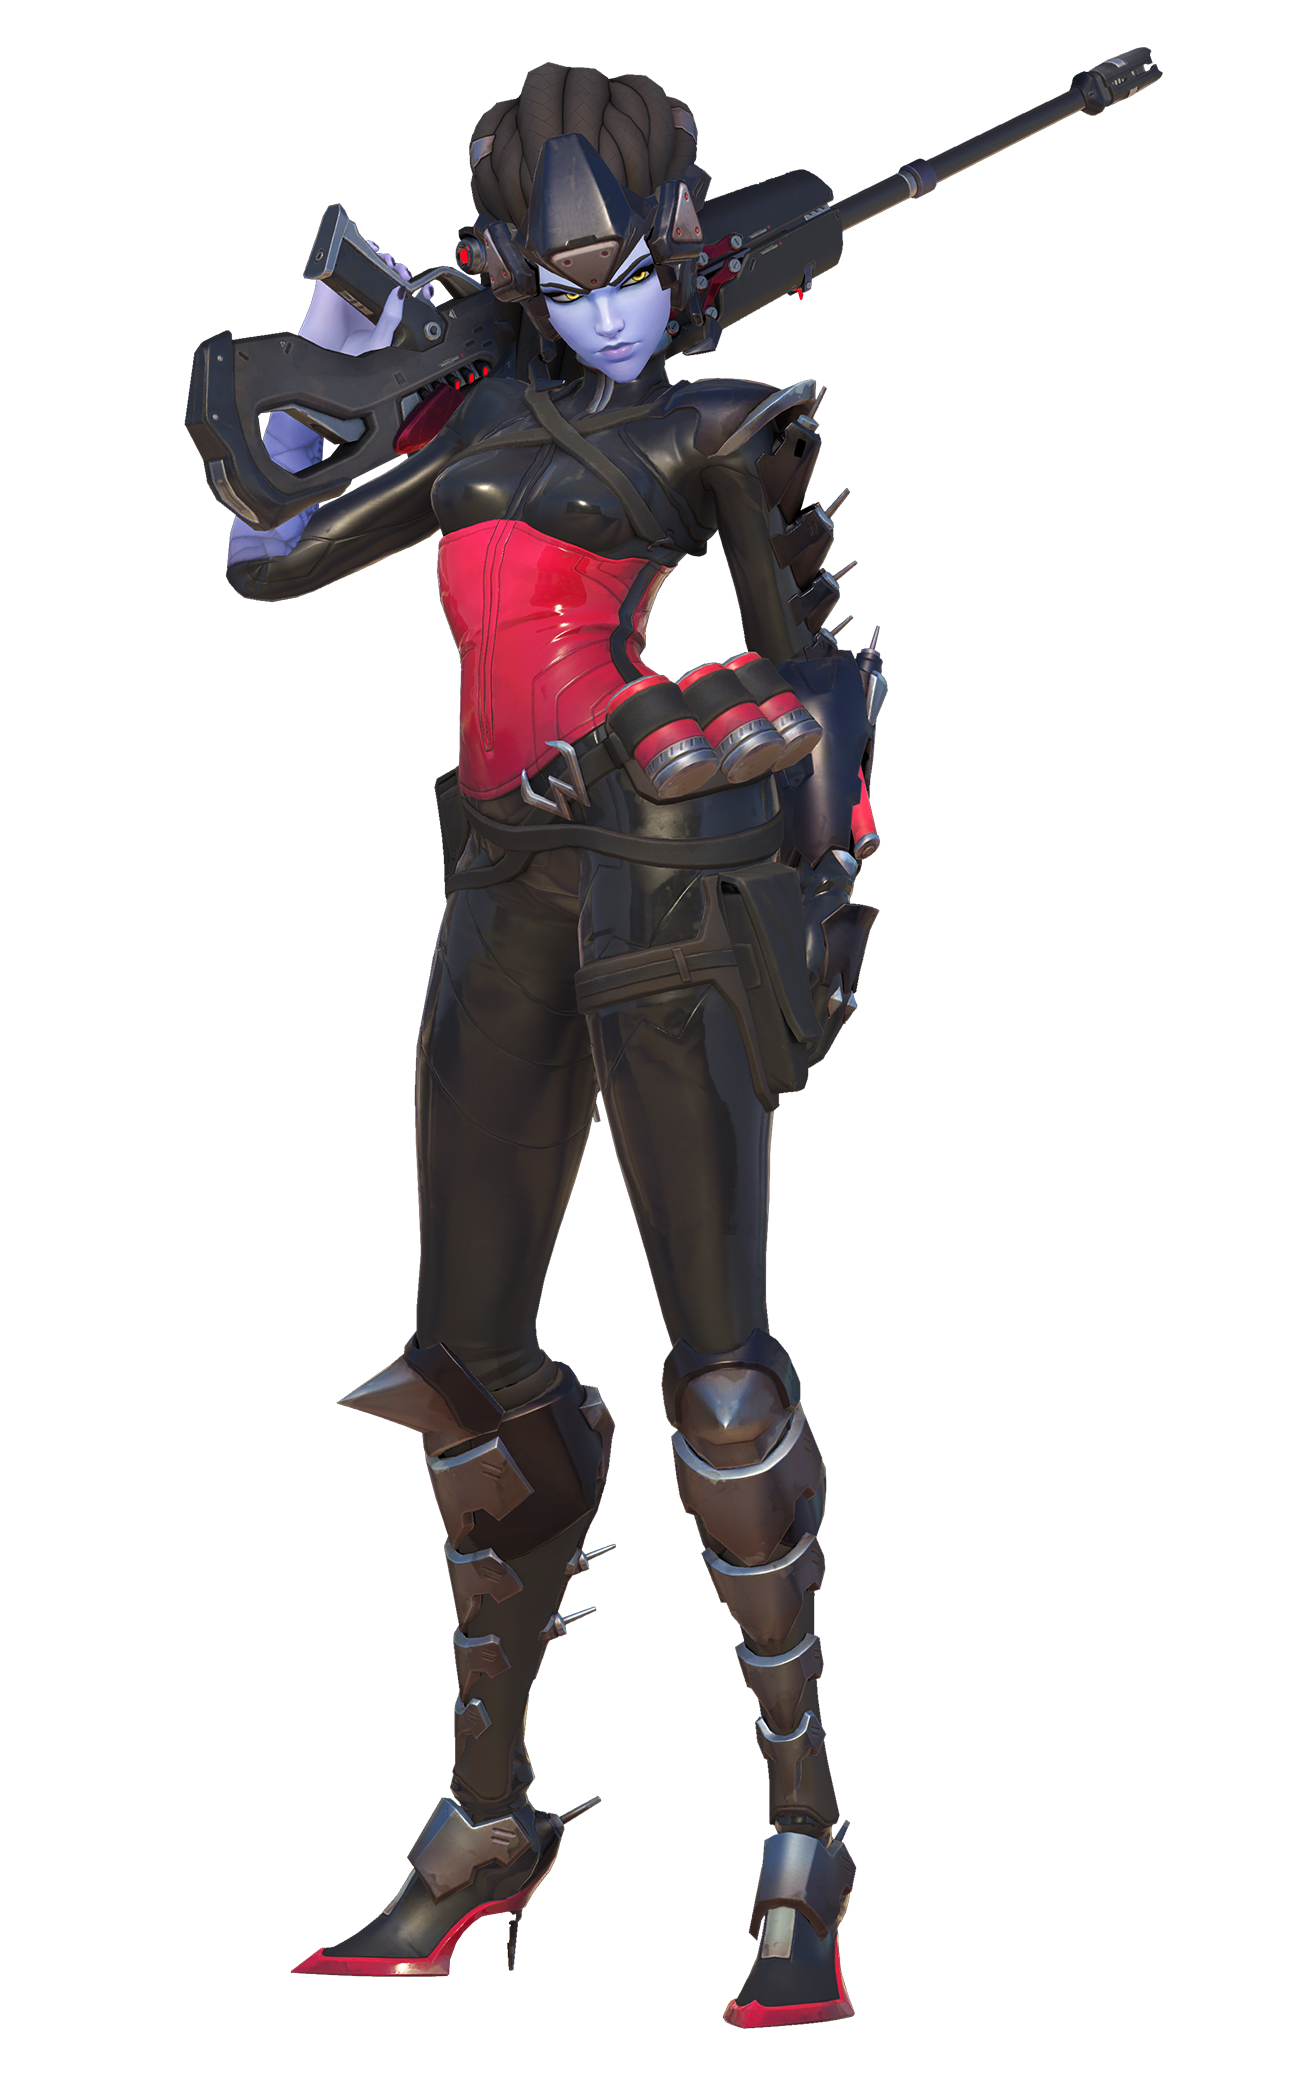 WIdowmaker Noire Skin - General Discussion - Overwatch Forums